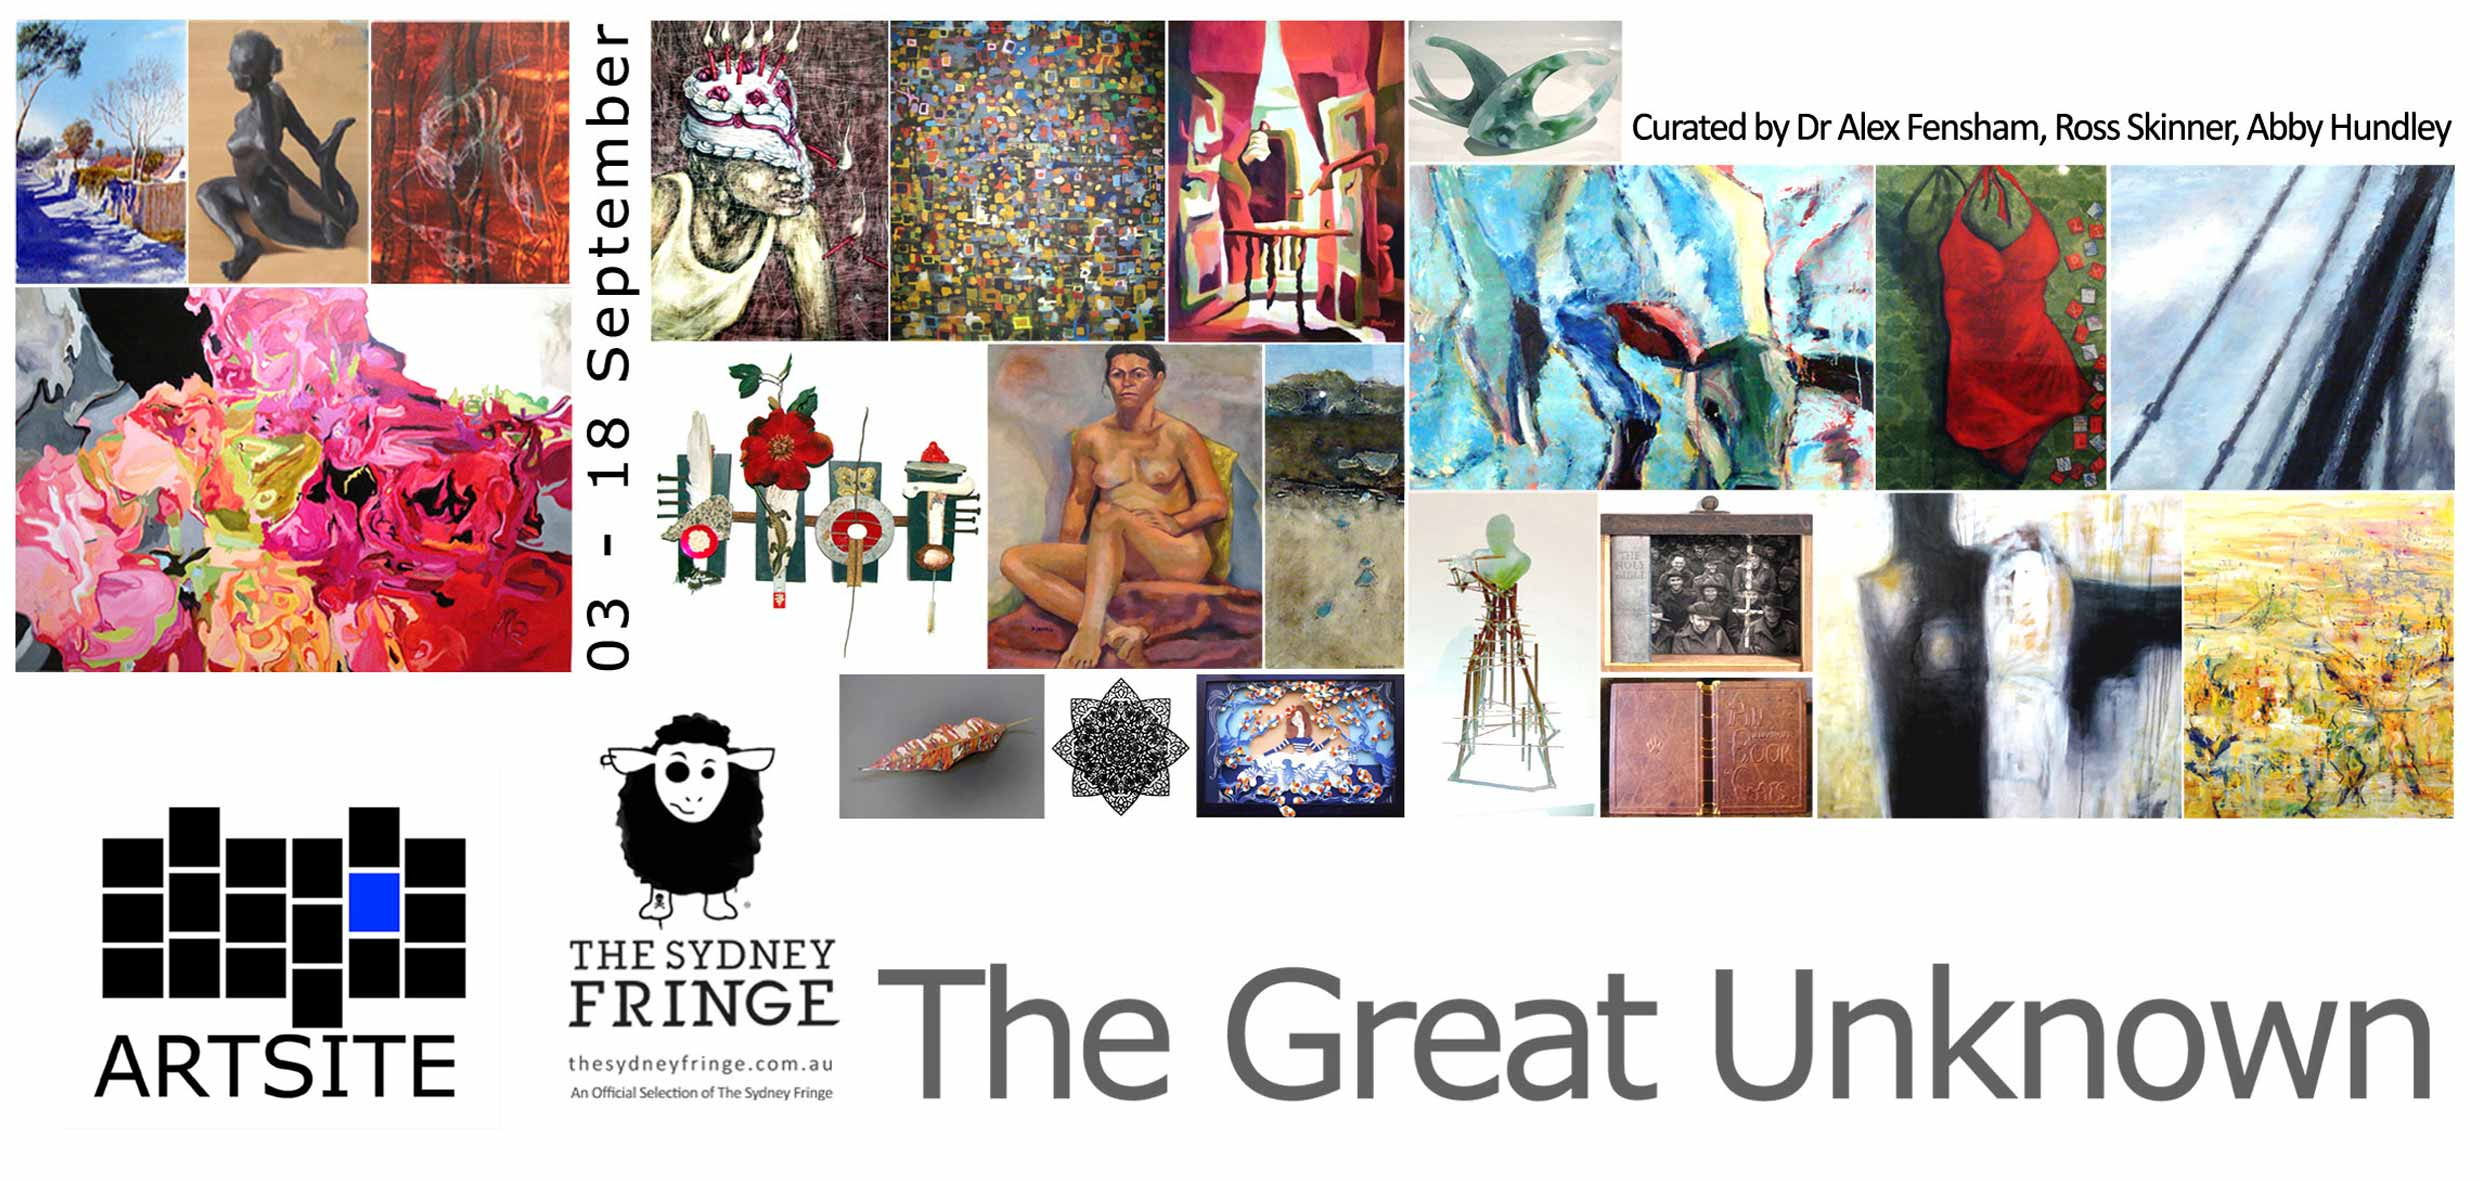 GU11 - The Great Unknown, Artsite Gallery, 03 - 18 September 2011. An exhibition of Un(der)Represented local Sydney Artists - Curated by Alex Fensham, Ross Skinner, Abby Hundley.